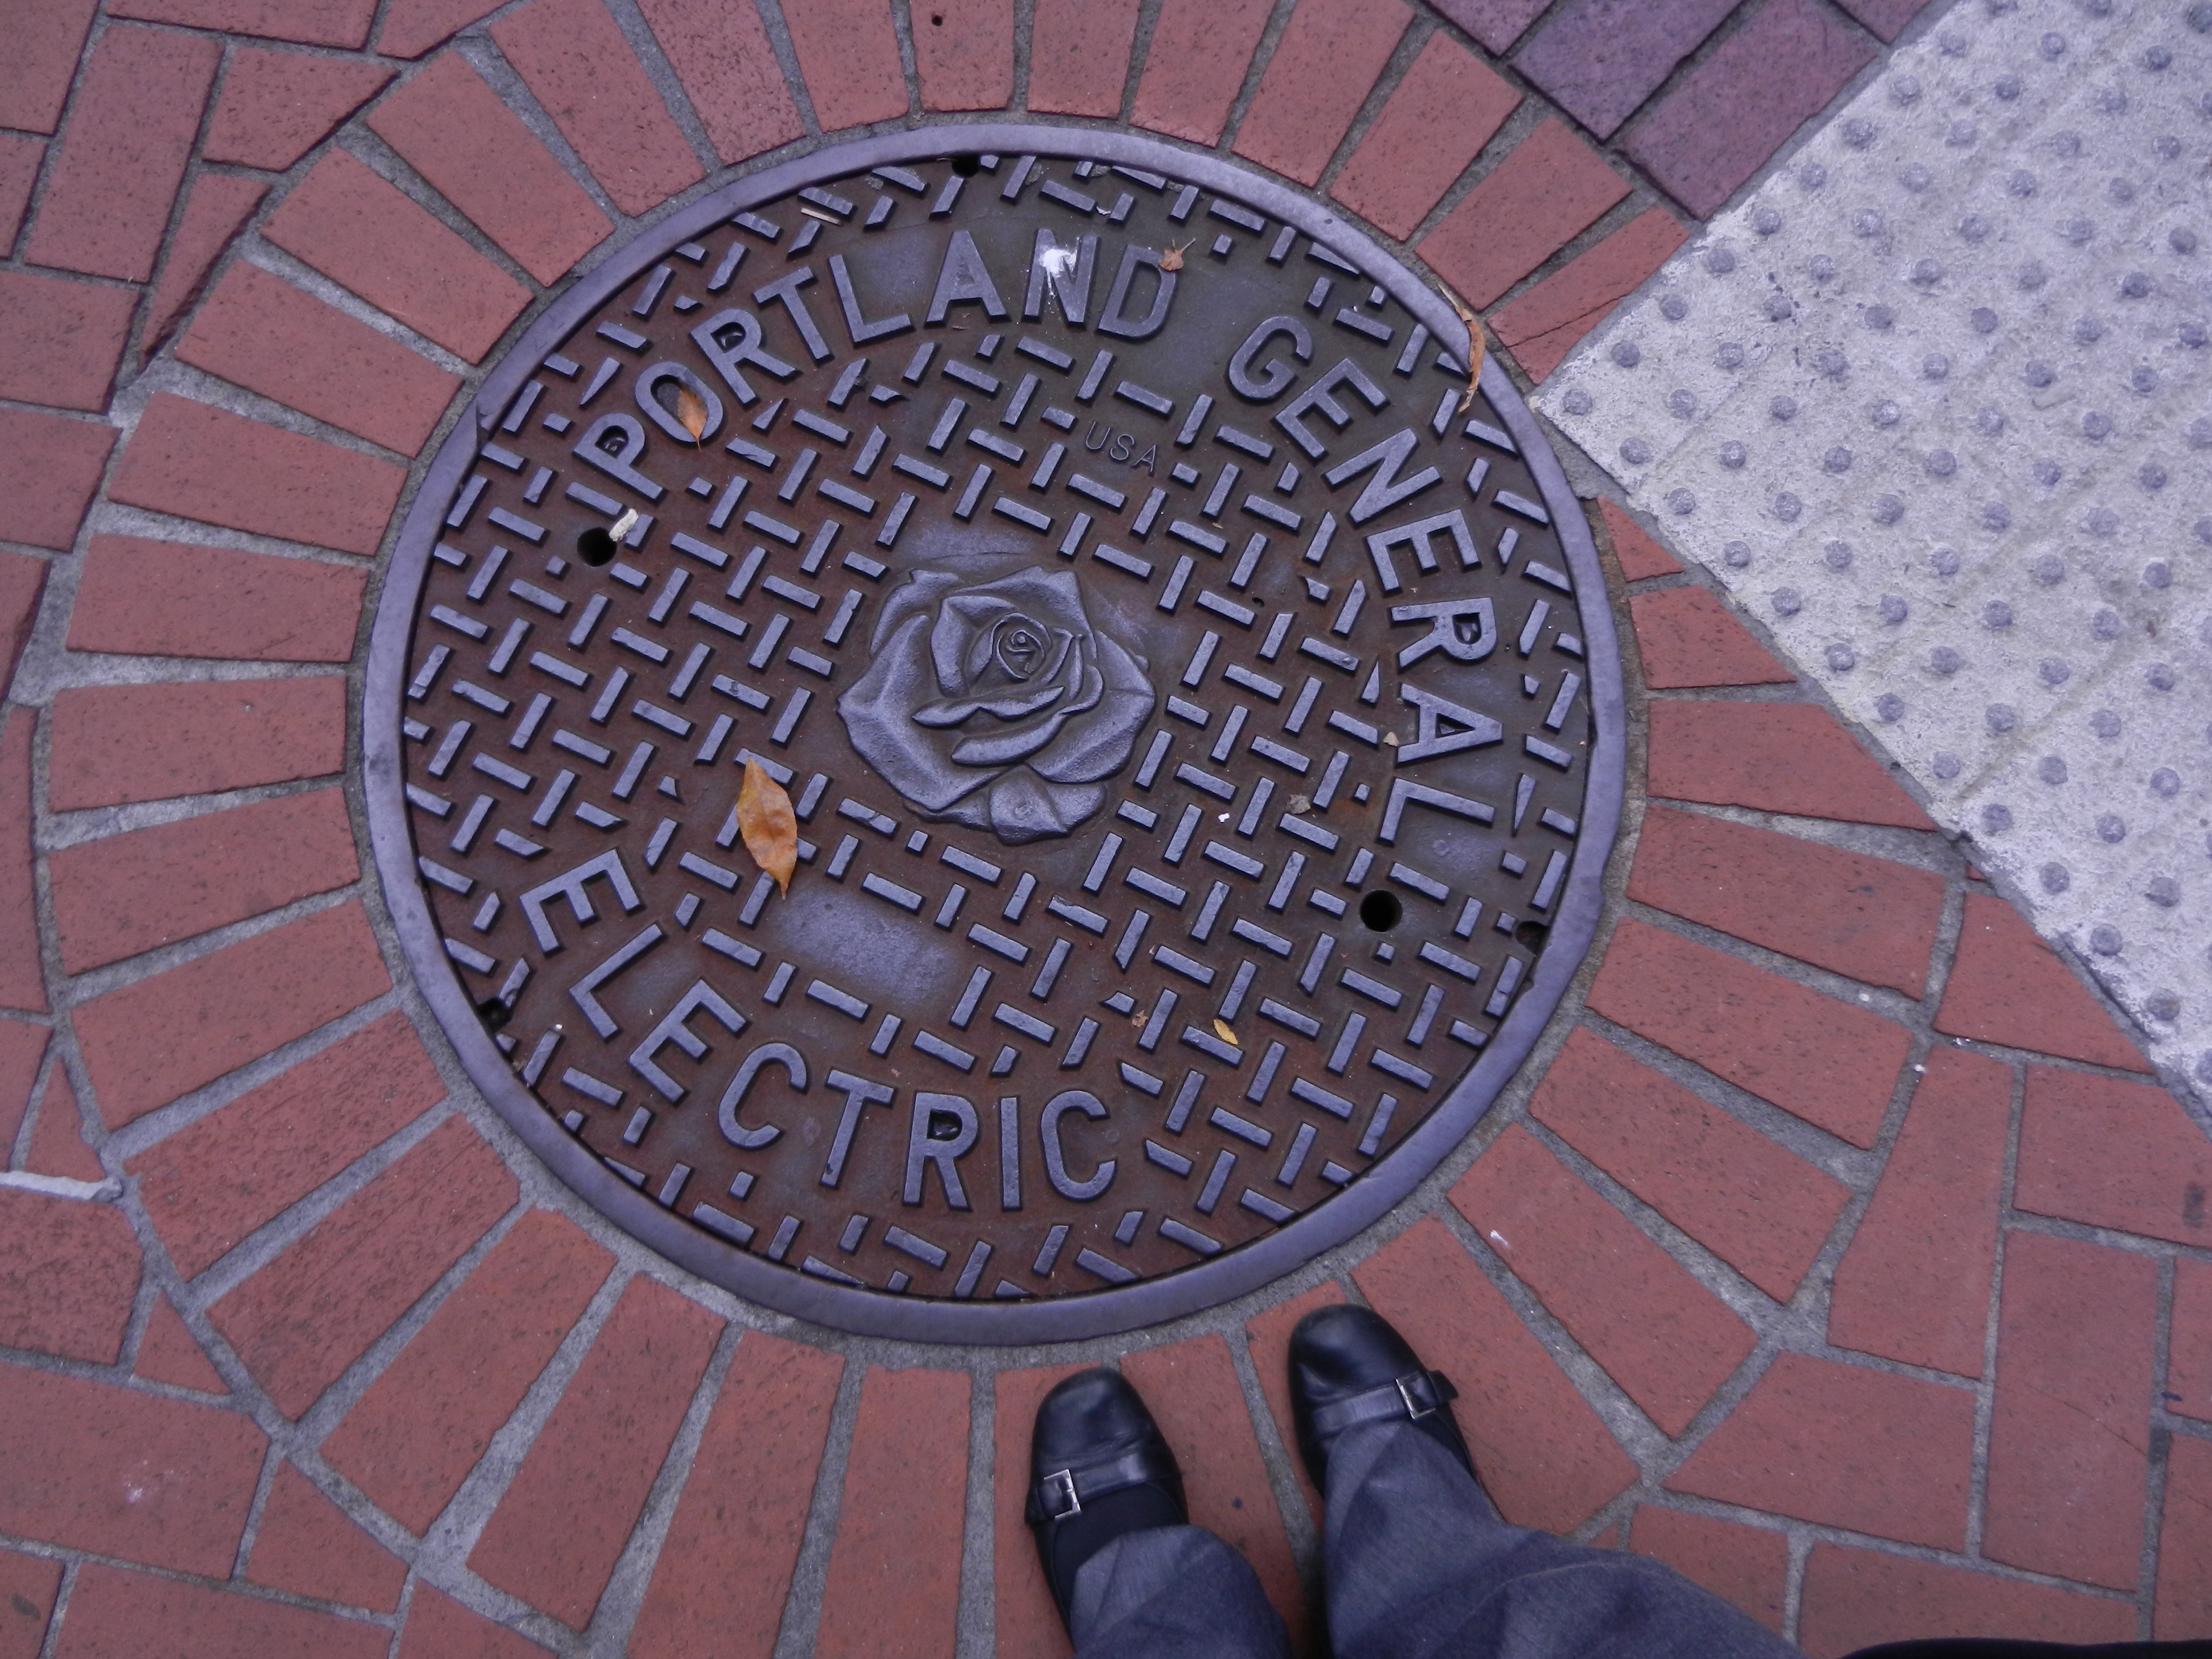 Portland General Electric manhole cover with a rose on it, and feet standing next to it.